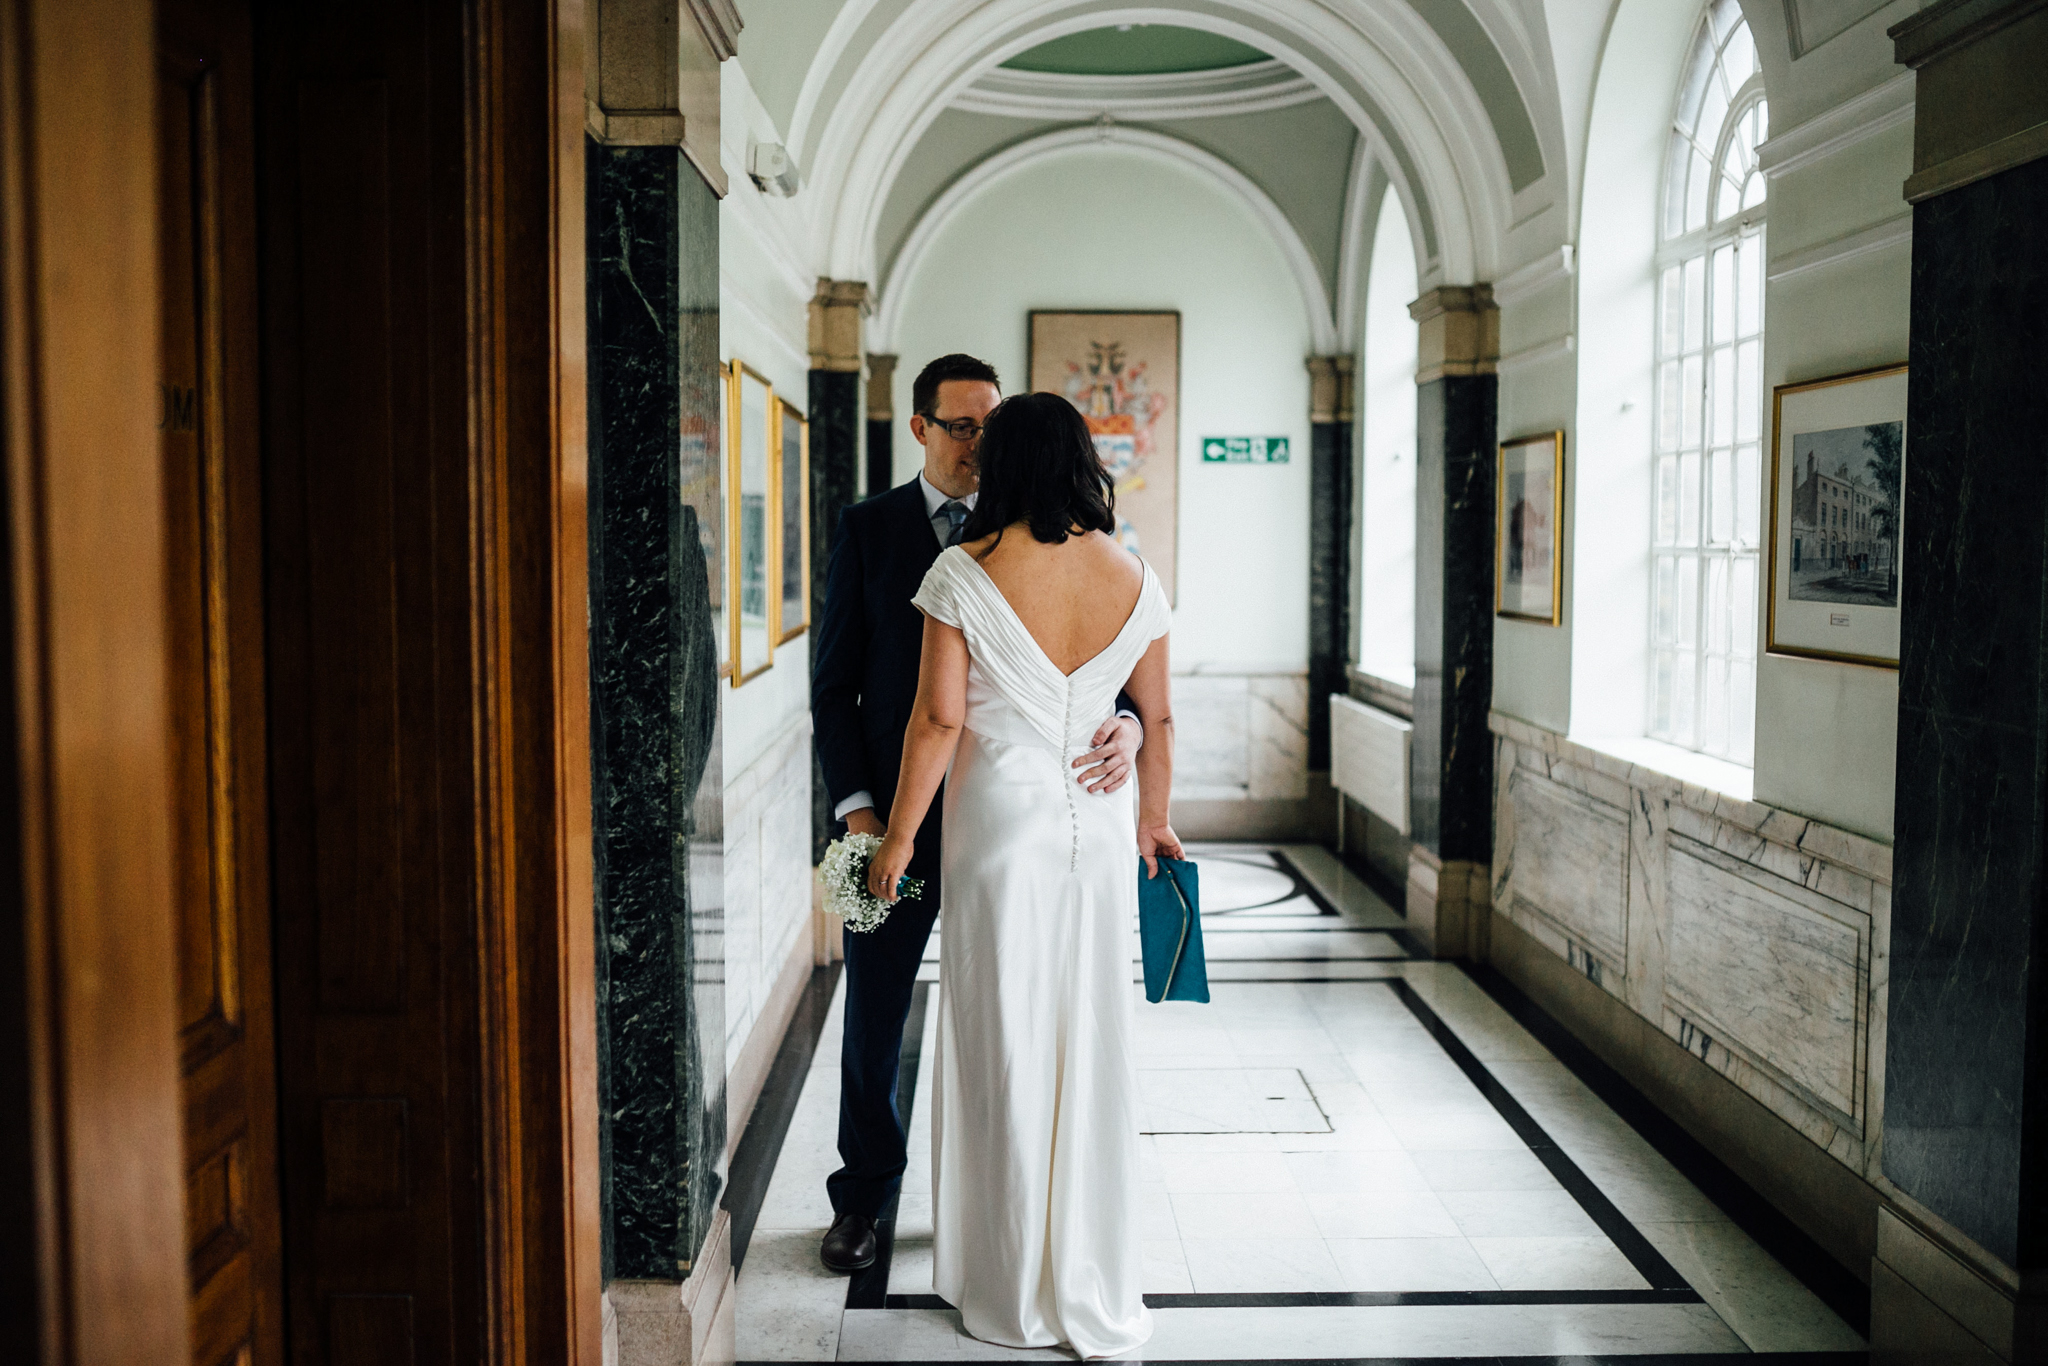 wedding photographer in london islington town hall - first look between bride and groom bridal prep